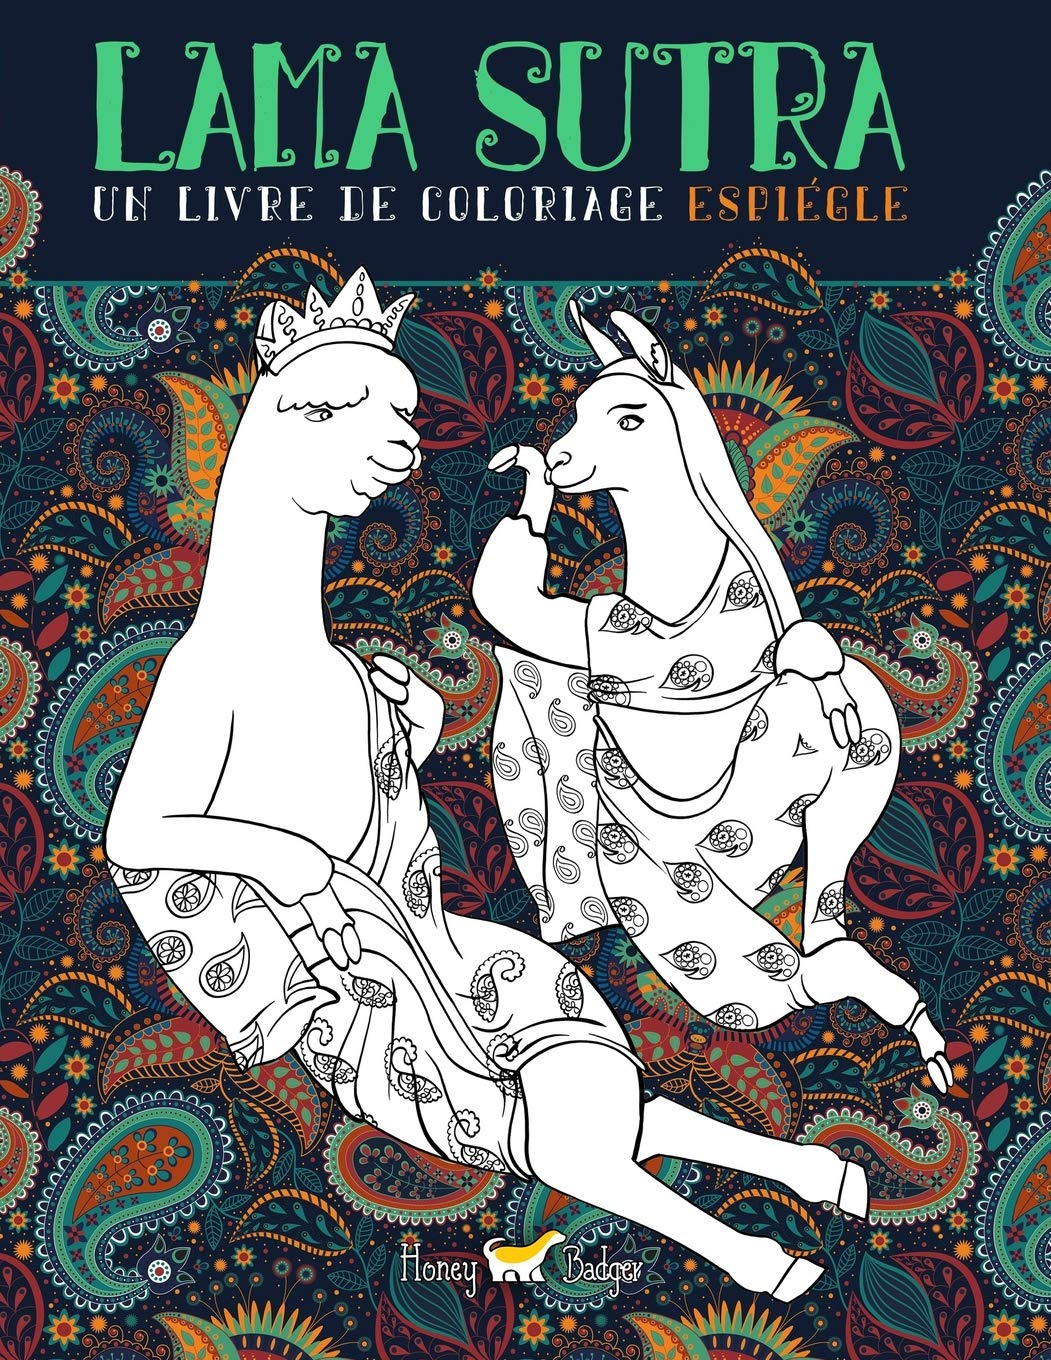 Lama Sutra: Un Livre De Coloriage Espiègle: Thème du Kama Sutra avec des lamas, des paresseux et des licornes Broché – 17 janvier 2017 Honey Badger Coloring 1542594618 HUMOR / Form / Pictorial Humor/Form - Pictorial